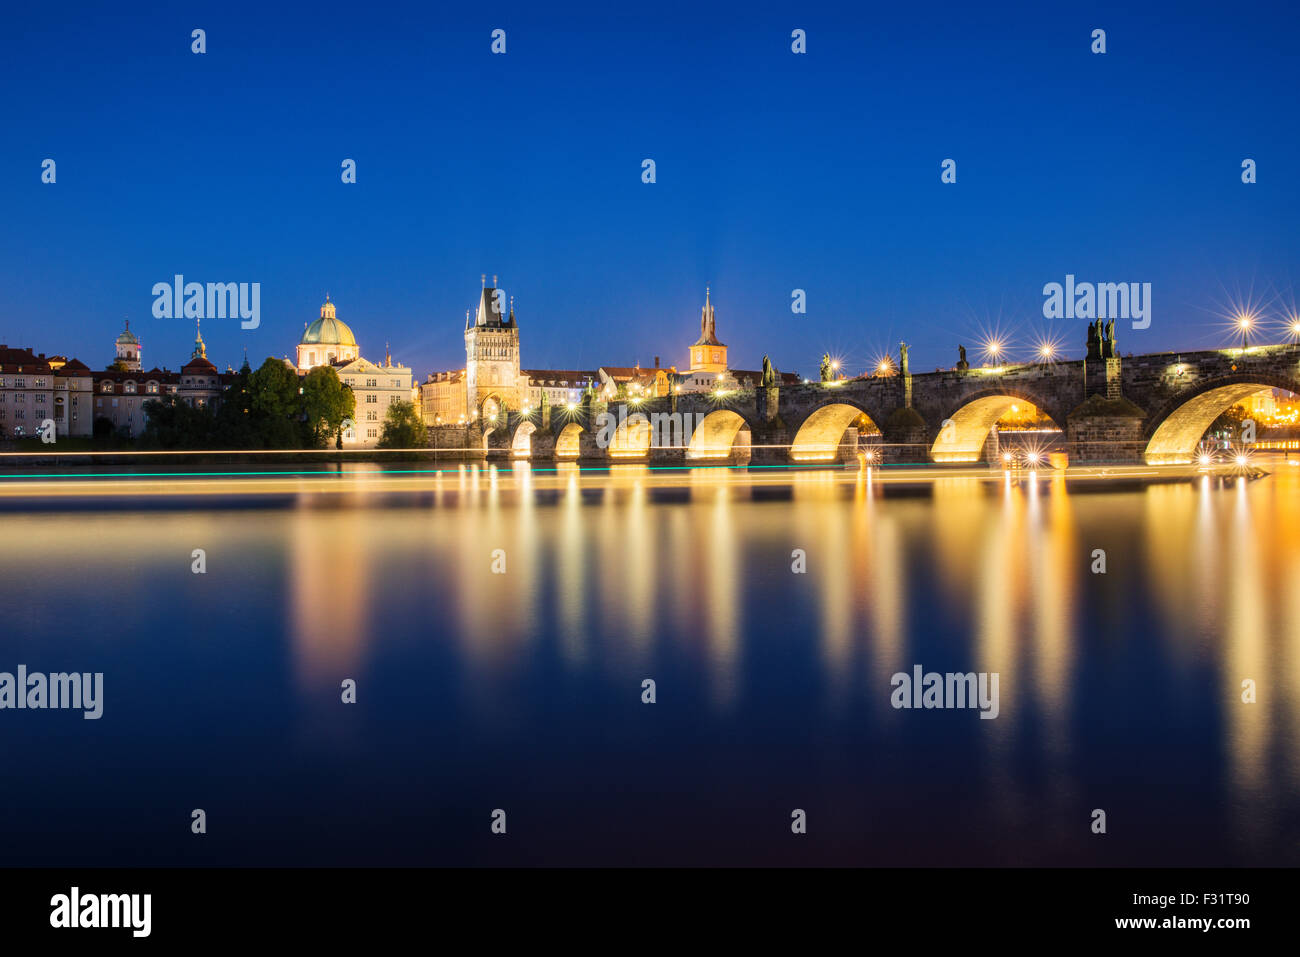 Night view of colorful old town and Charles Bridge with river Vltava, Prague, Czech Republic Stock Photo